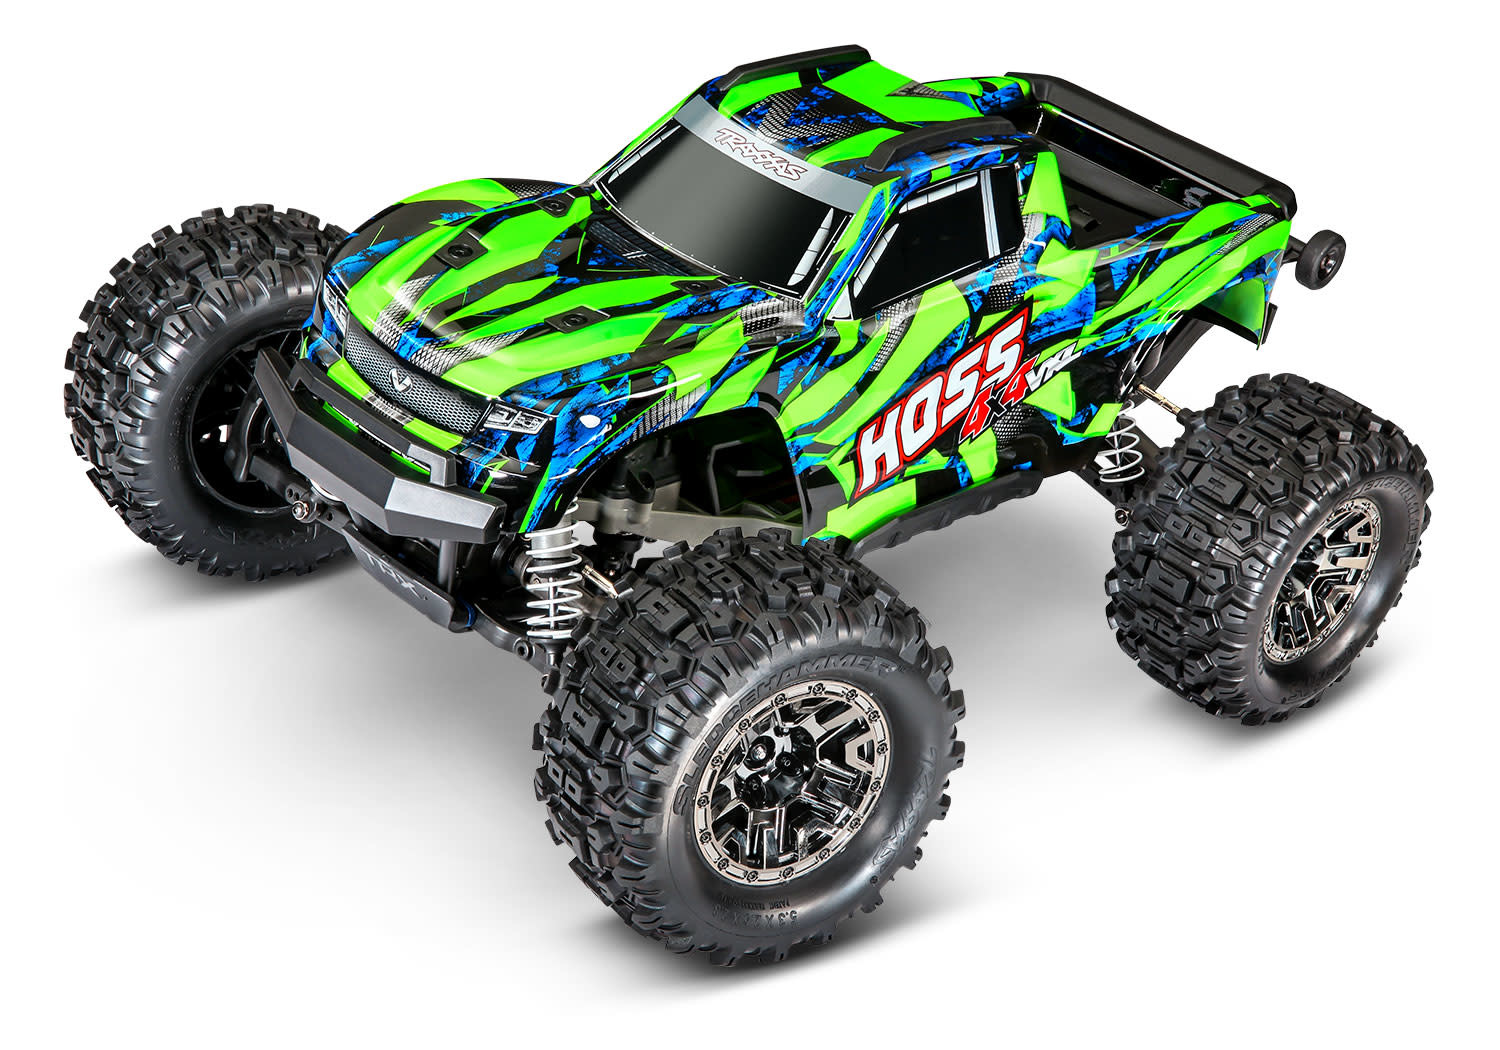 Traxxas Hoss 1/10 Scale 4WD Brushless Electric Monster Truck, VXL-3S, TQi - Green TRX90076-4G-2